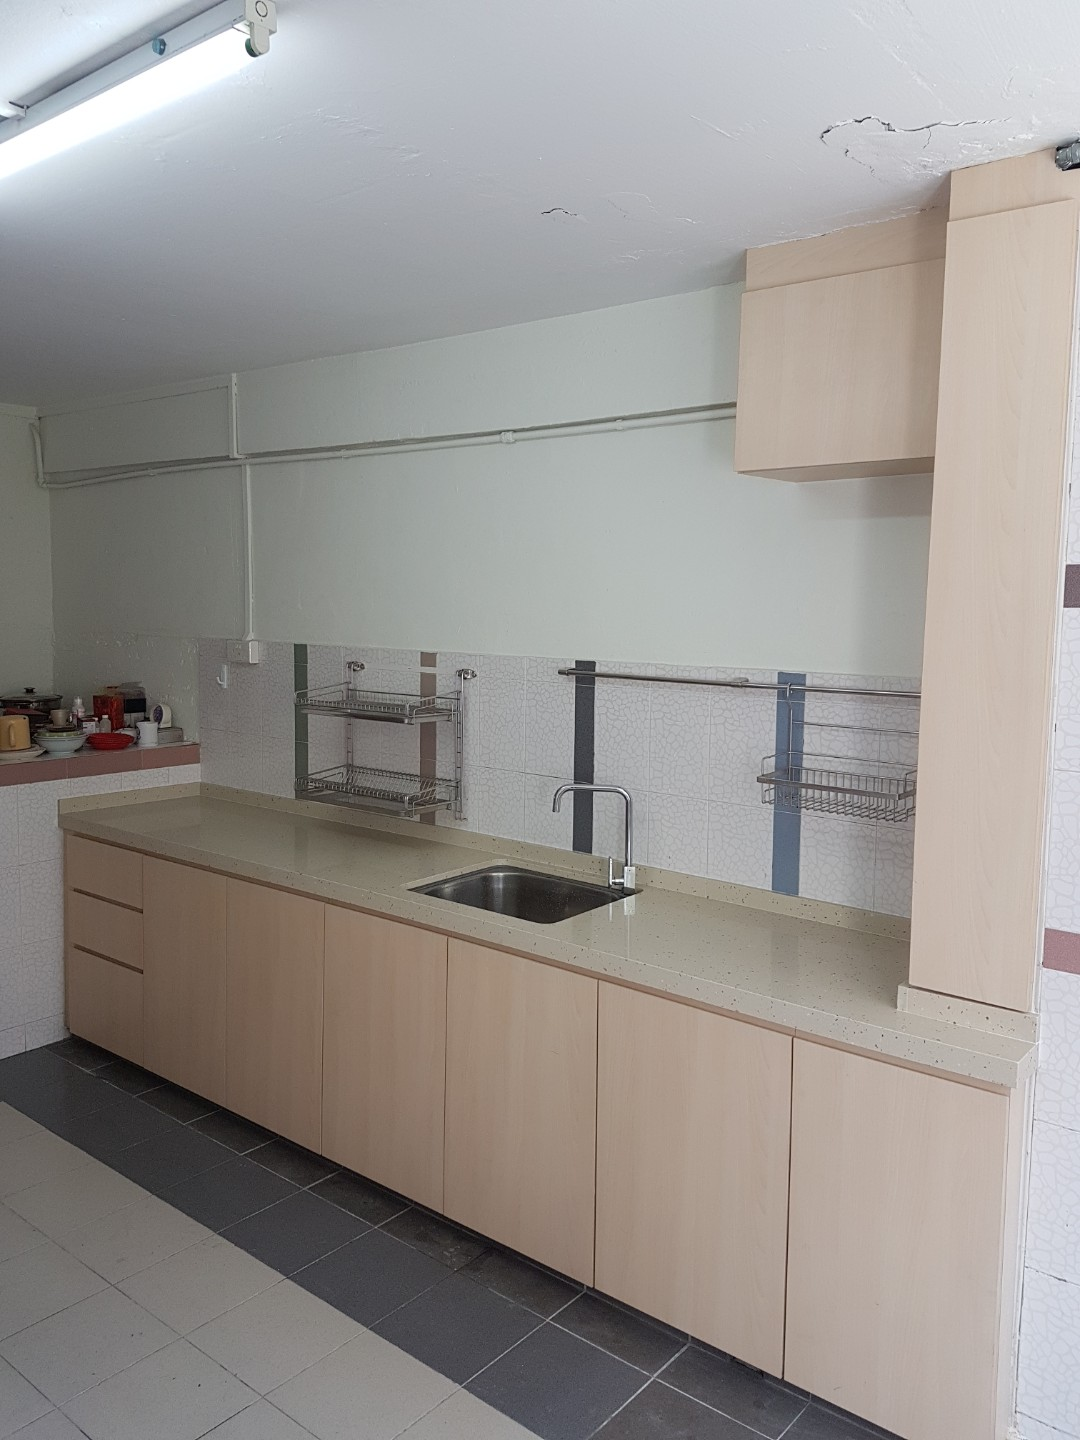 Carpenter customised kitchen cabinet, Furniture, Shelves & Drawers on Carousell